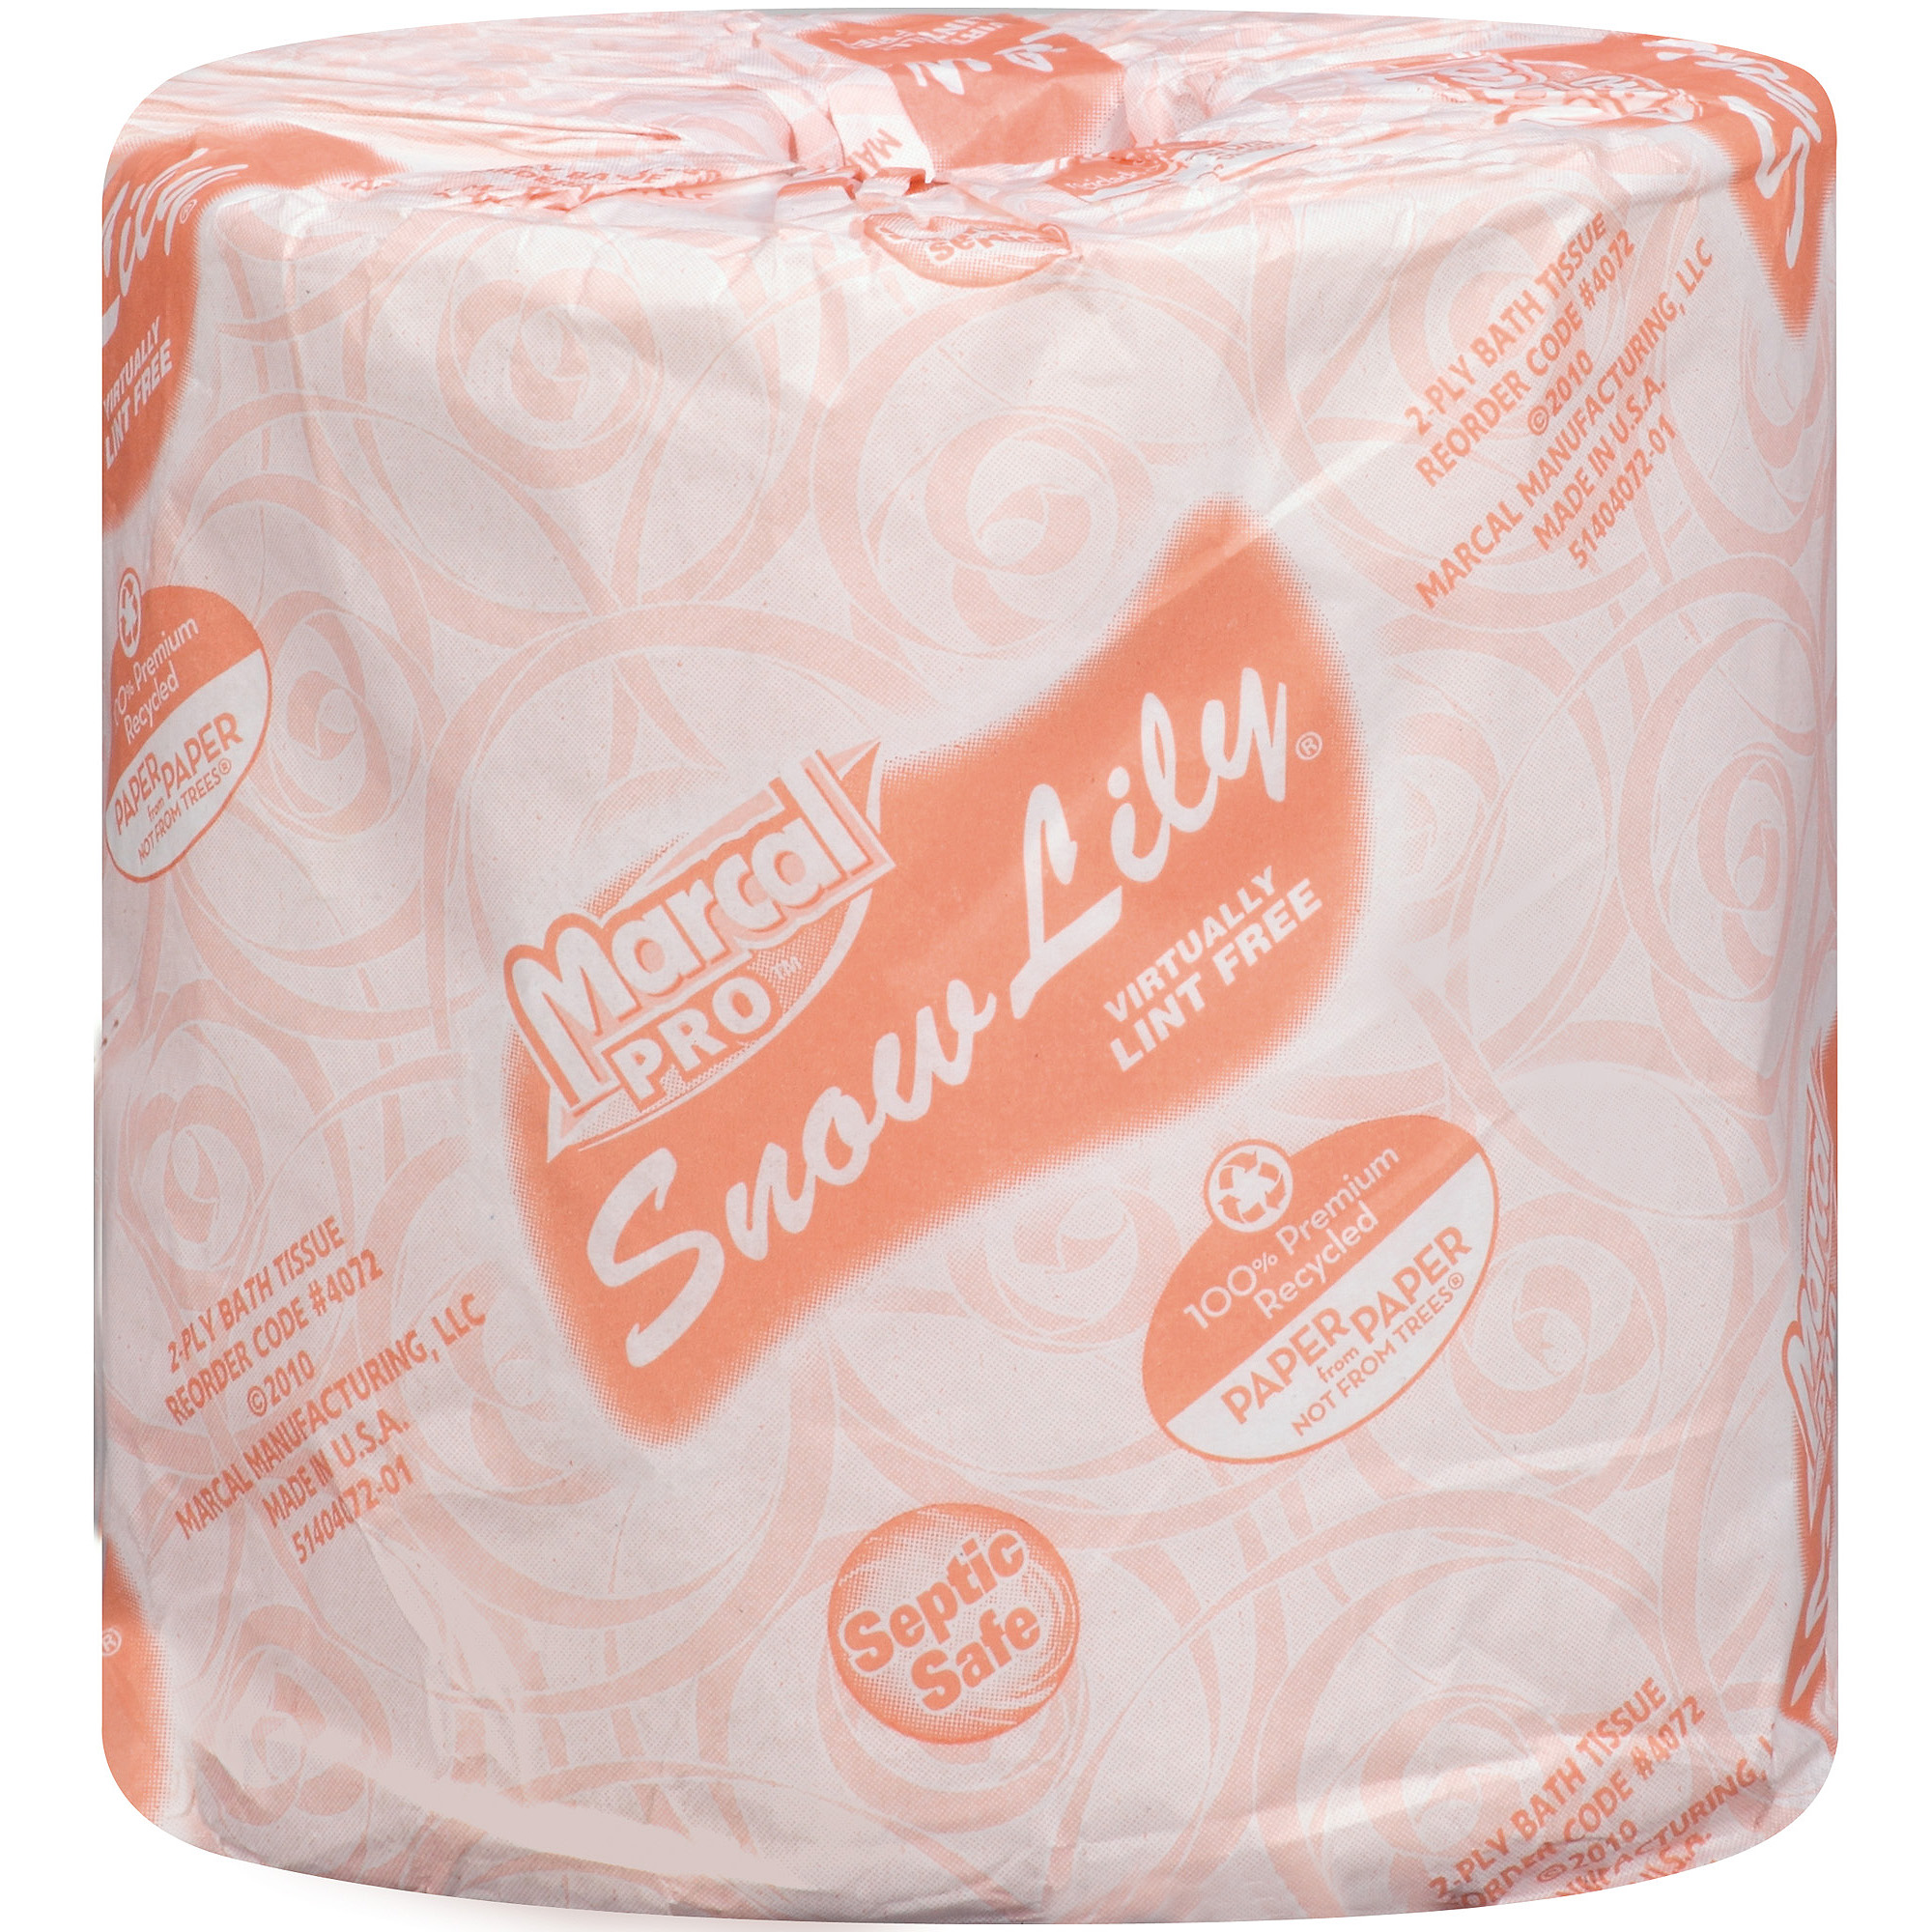 Marcal Pro Snow Lily 100% Premium Recycled Bath Tissue, 336 sheets, 48 rolls